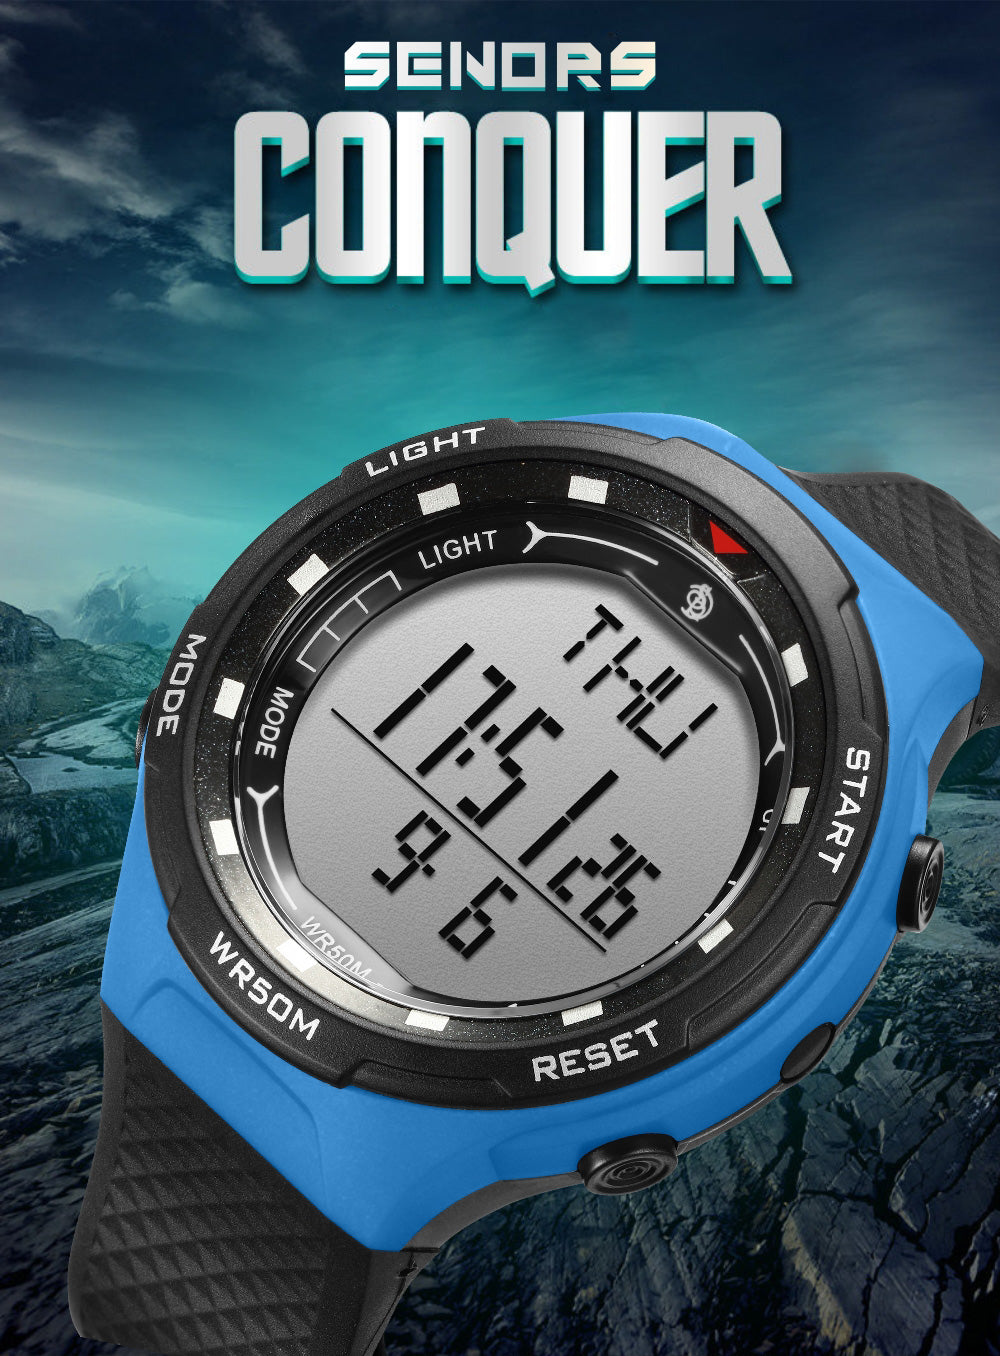 best cheap digital watch